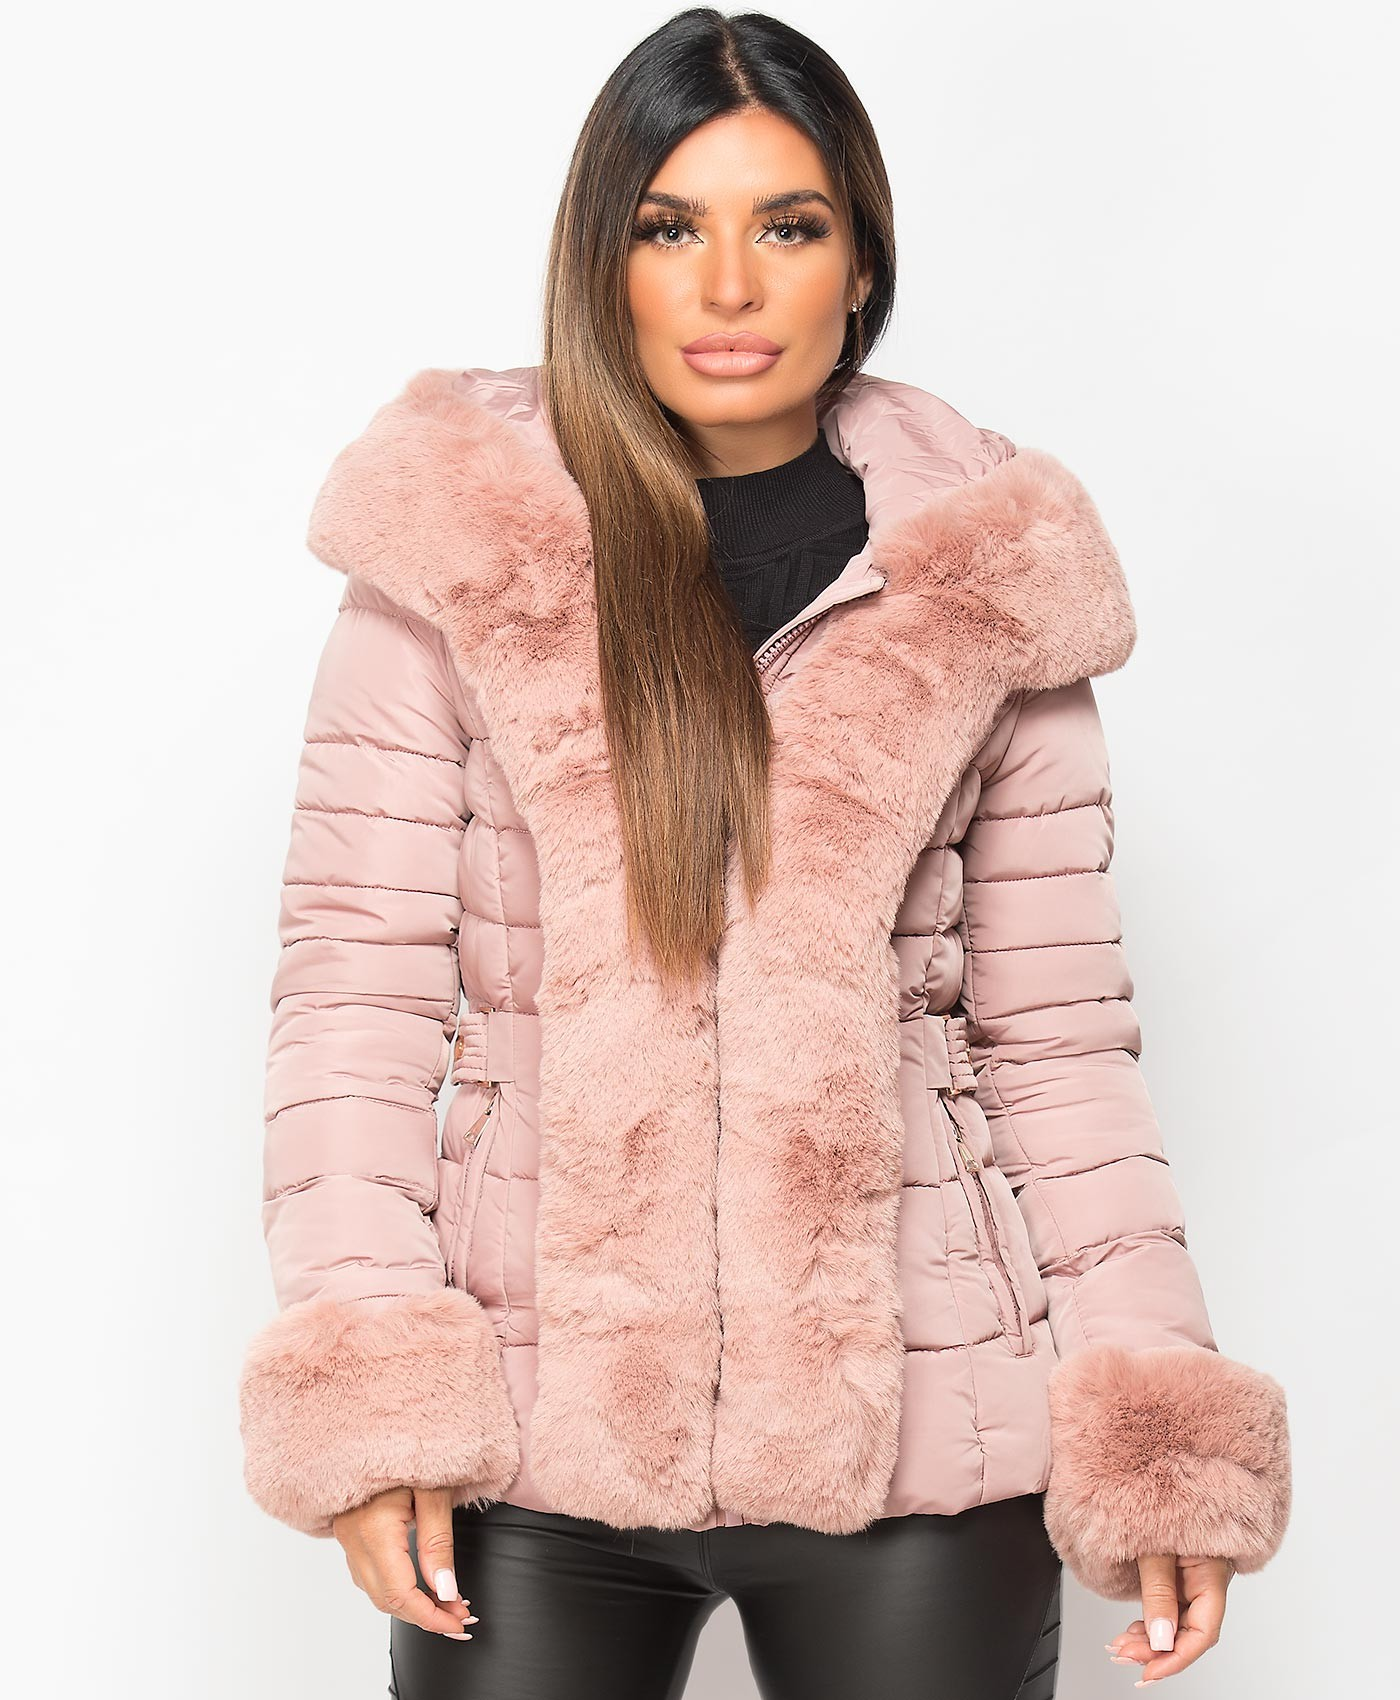 Pink-Faux-Fur-Trim-Padded-Quilted-Hooded-Puffer-Jacket-Coat-4